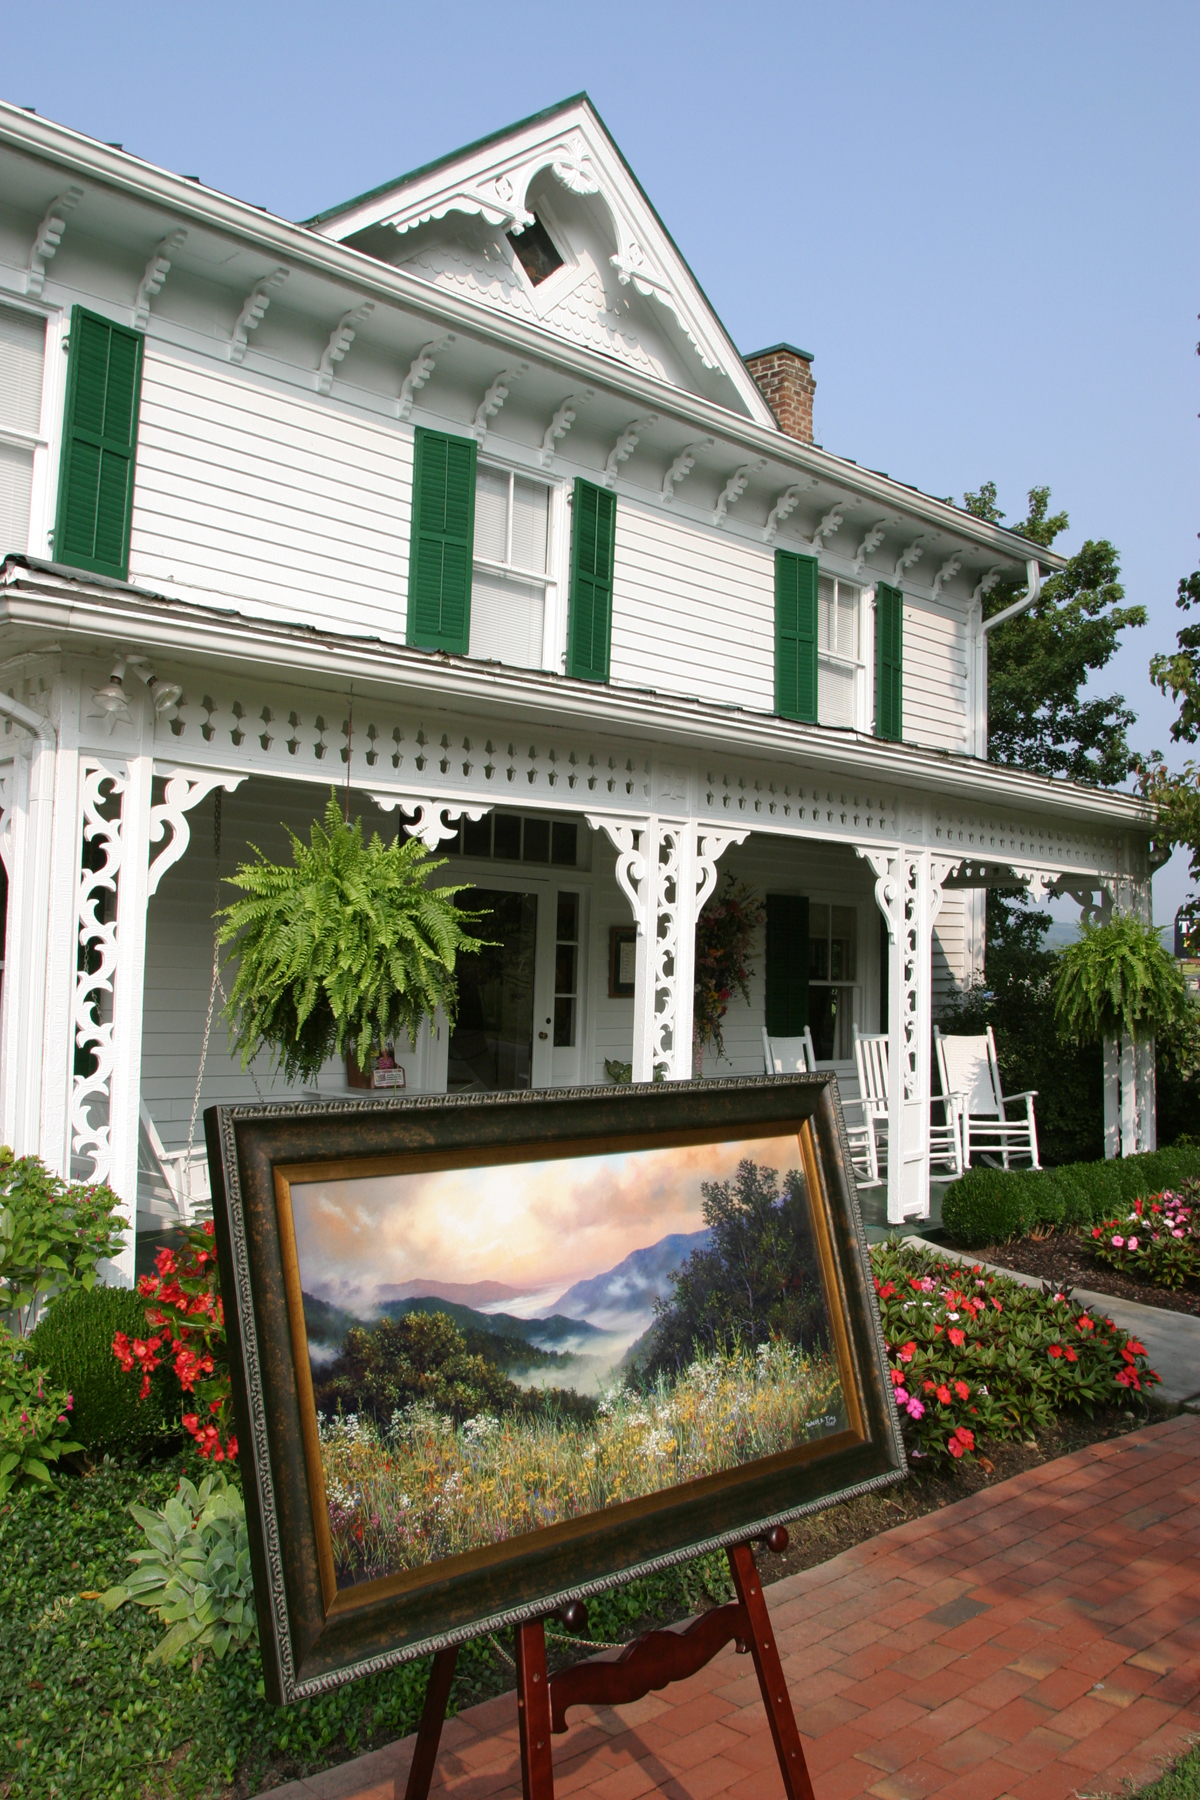 Robert Tino Art Gallery - things to do in Sevierville